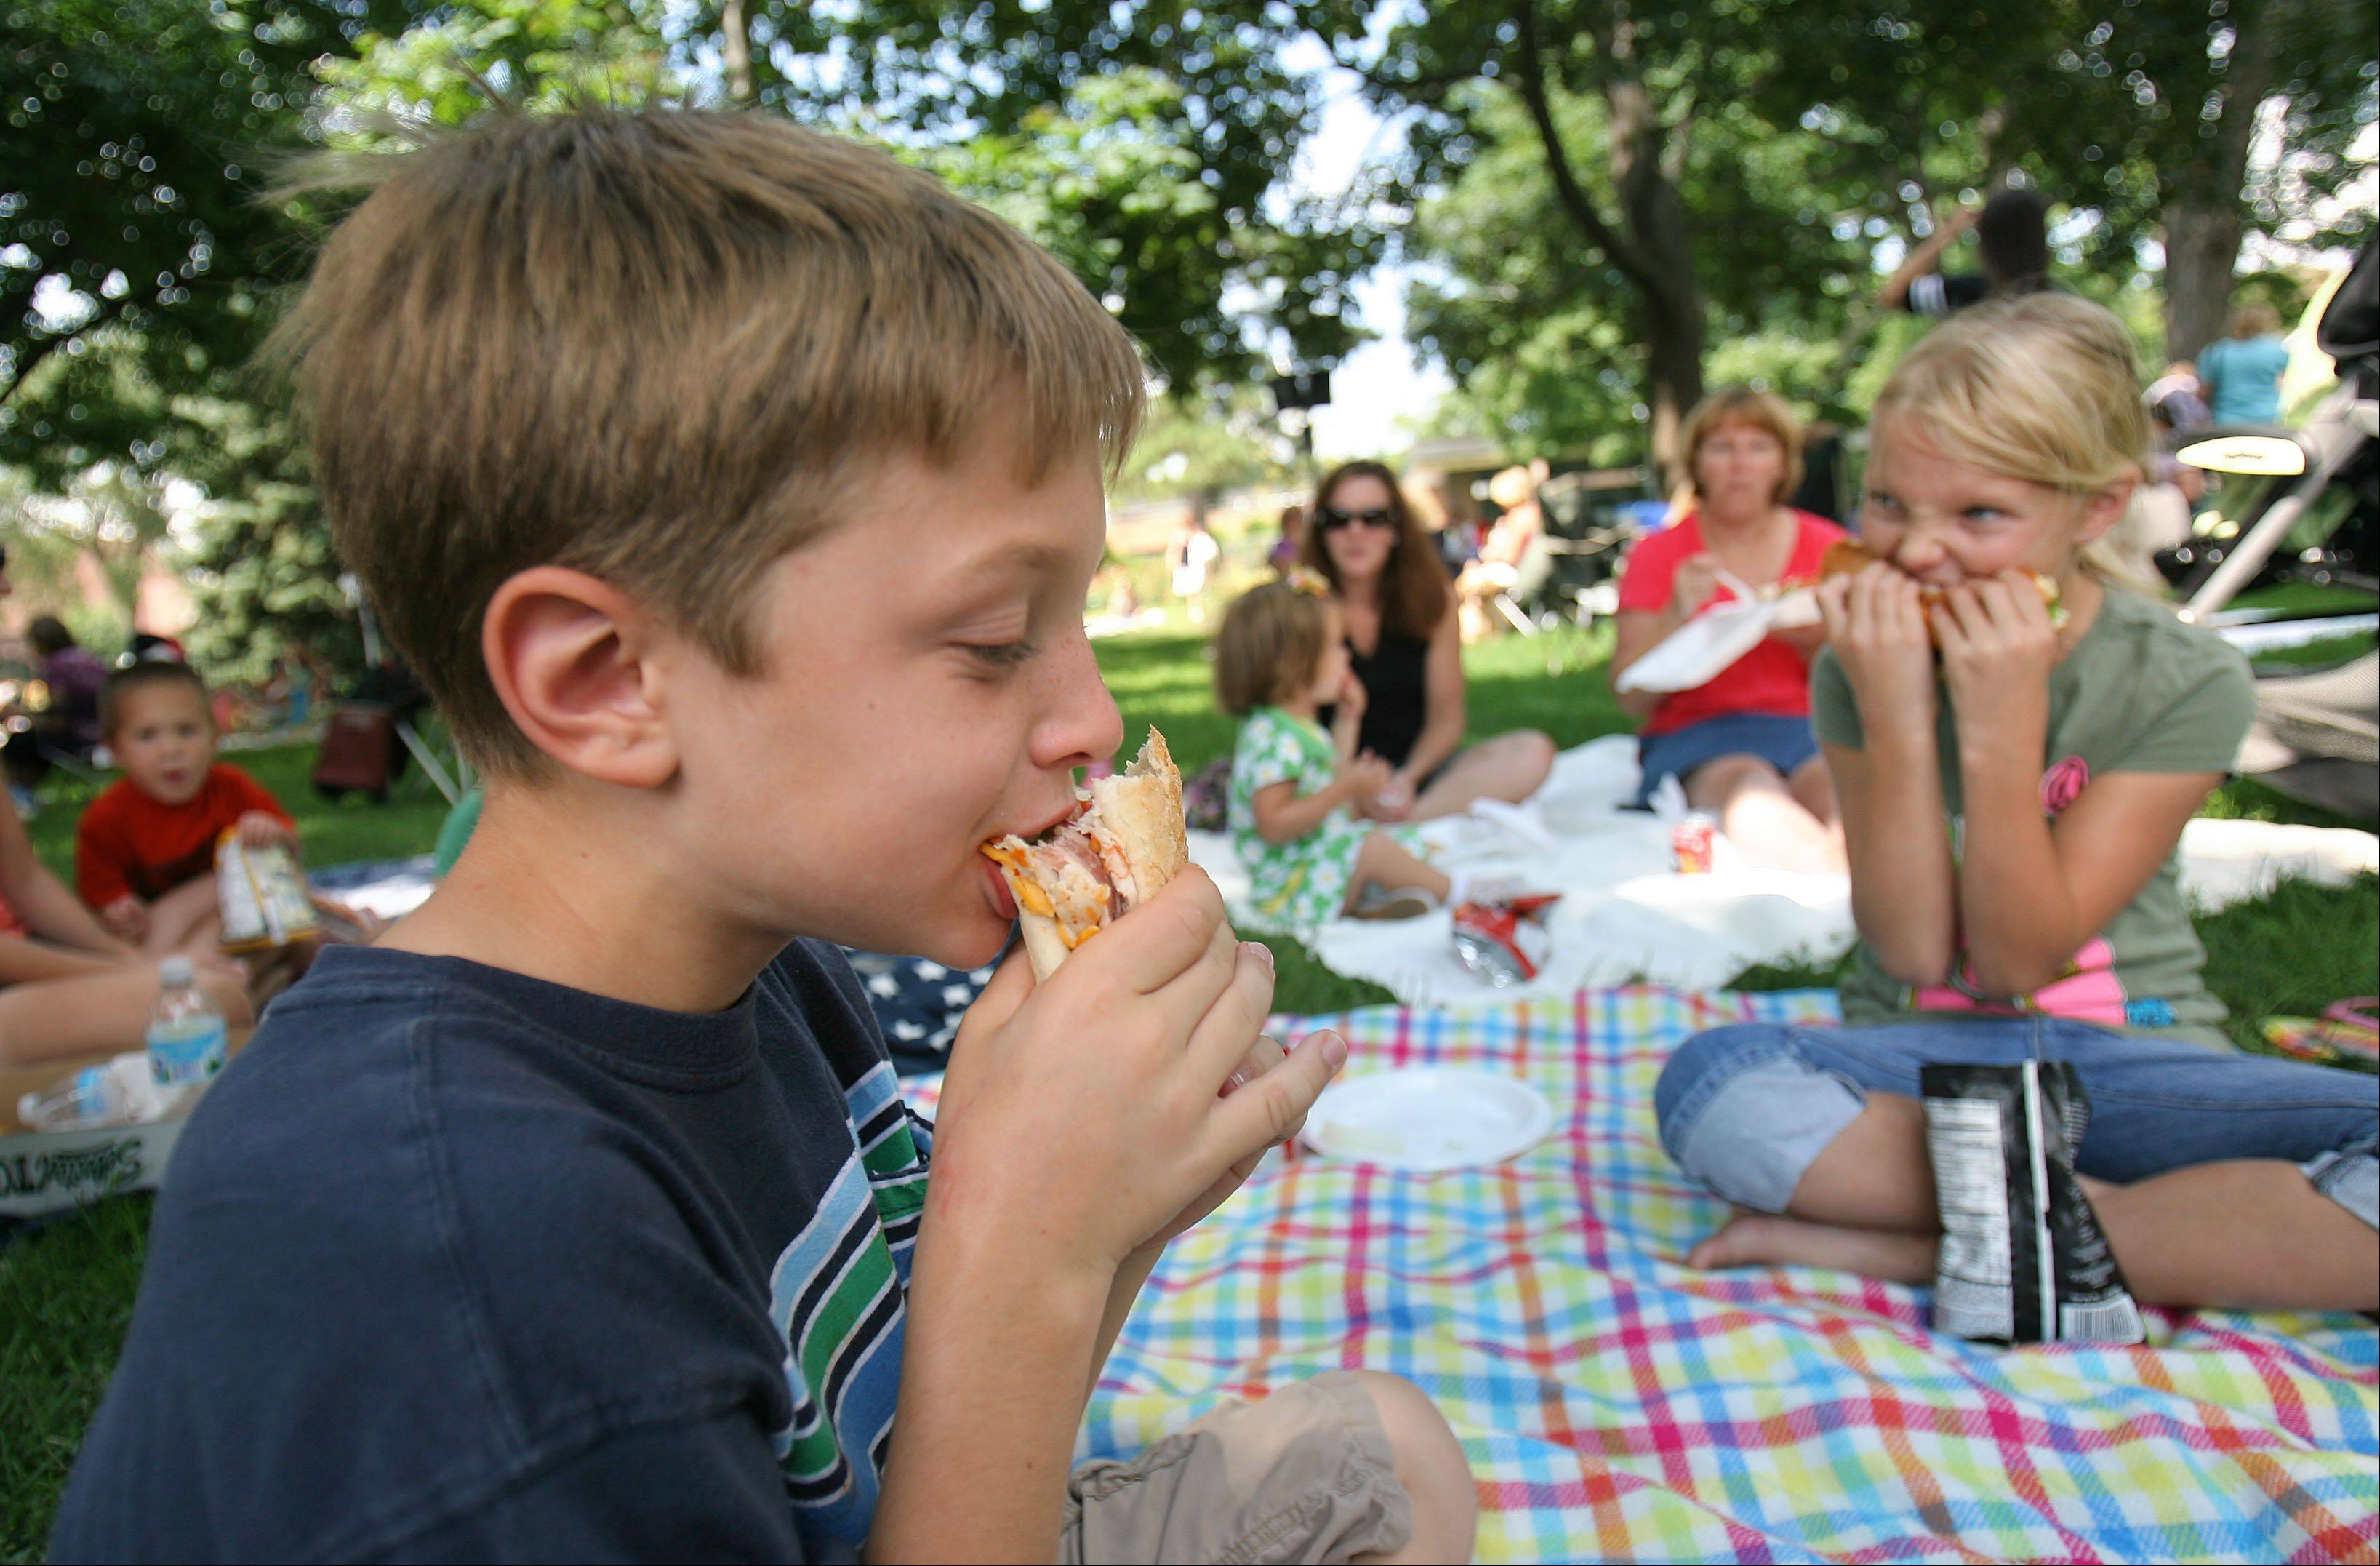 Joey Perrone and Sarah Krahnke of Libertyville munch down some sandwiches at the Out to Lunch event in Libertyville's Cook Park.